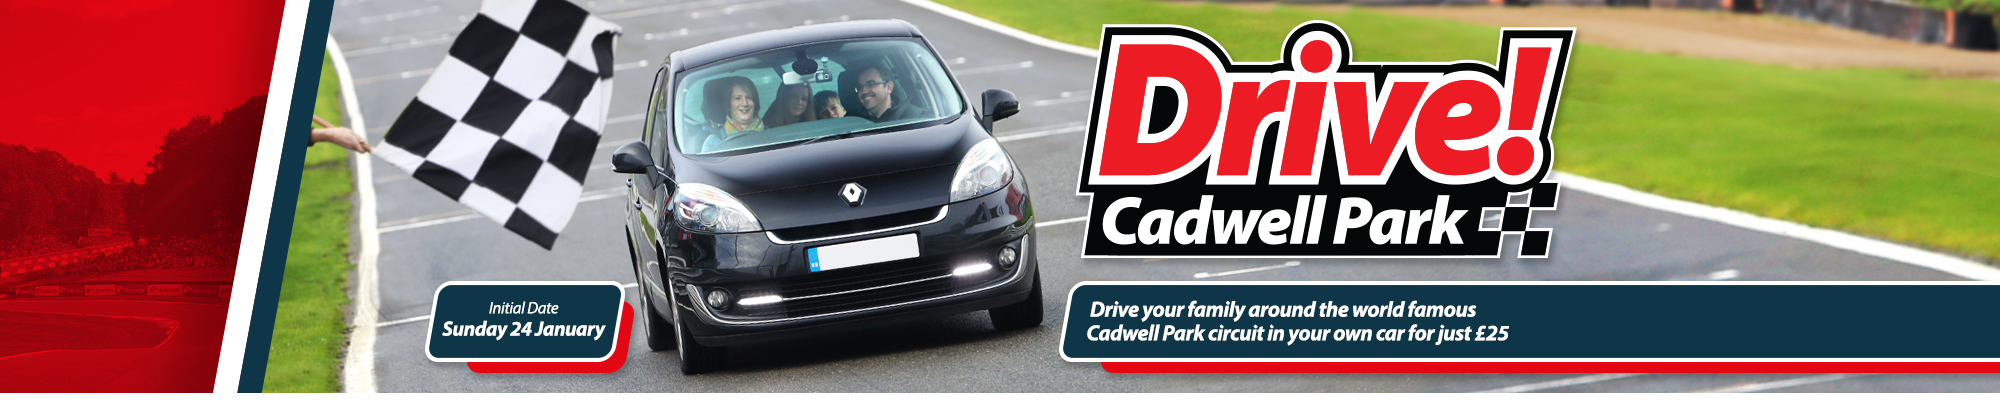 Welcome to Drive! Cadwell Park